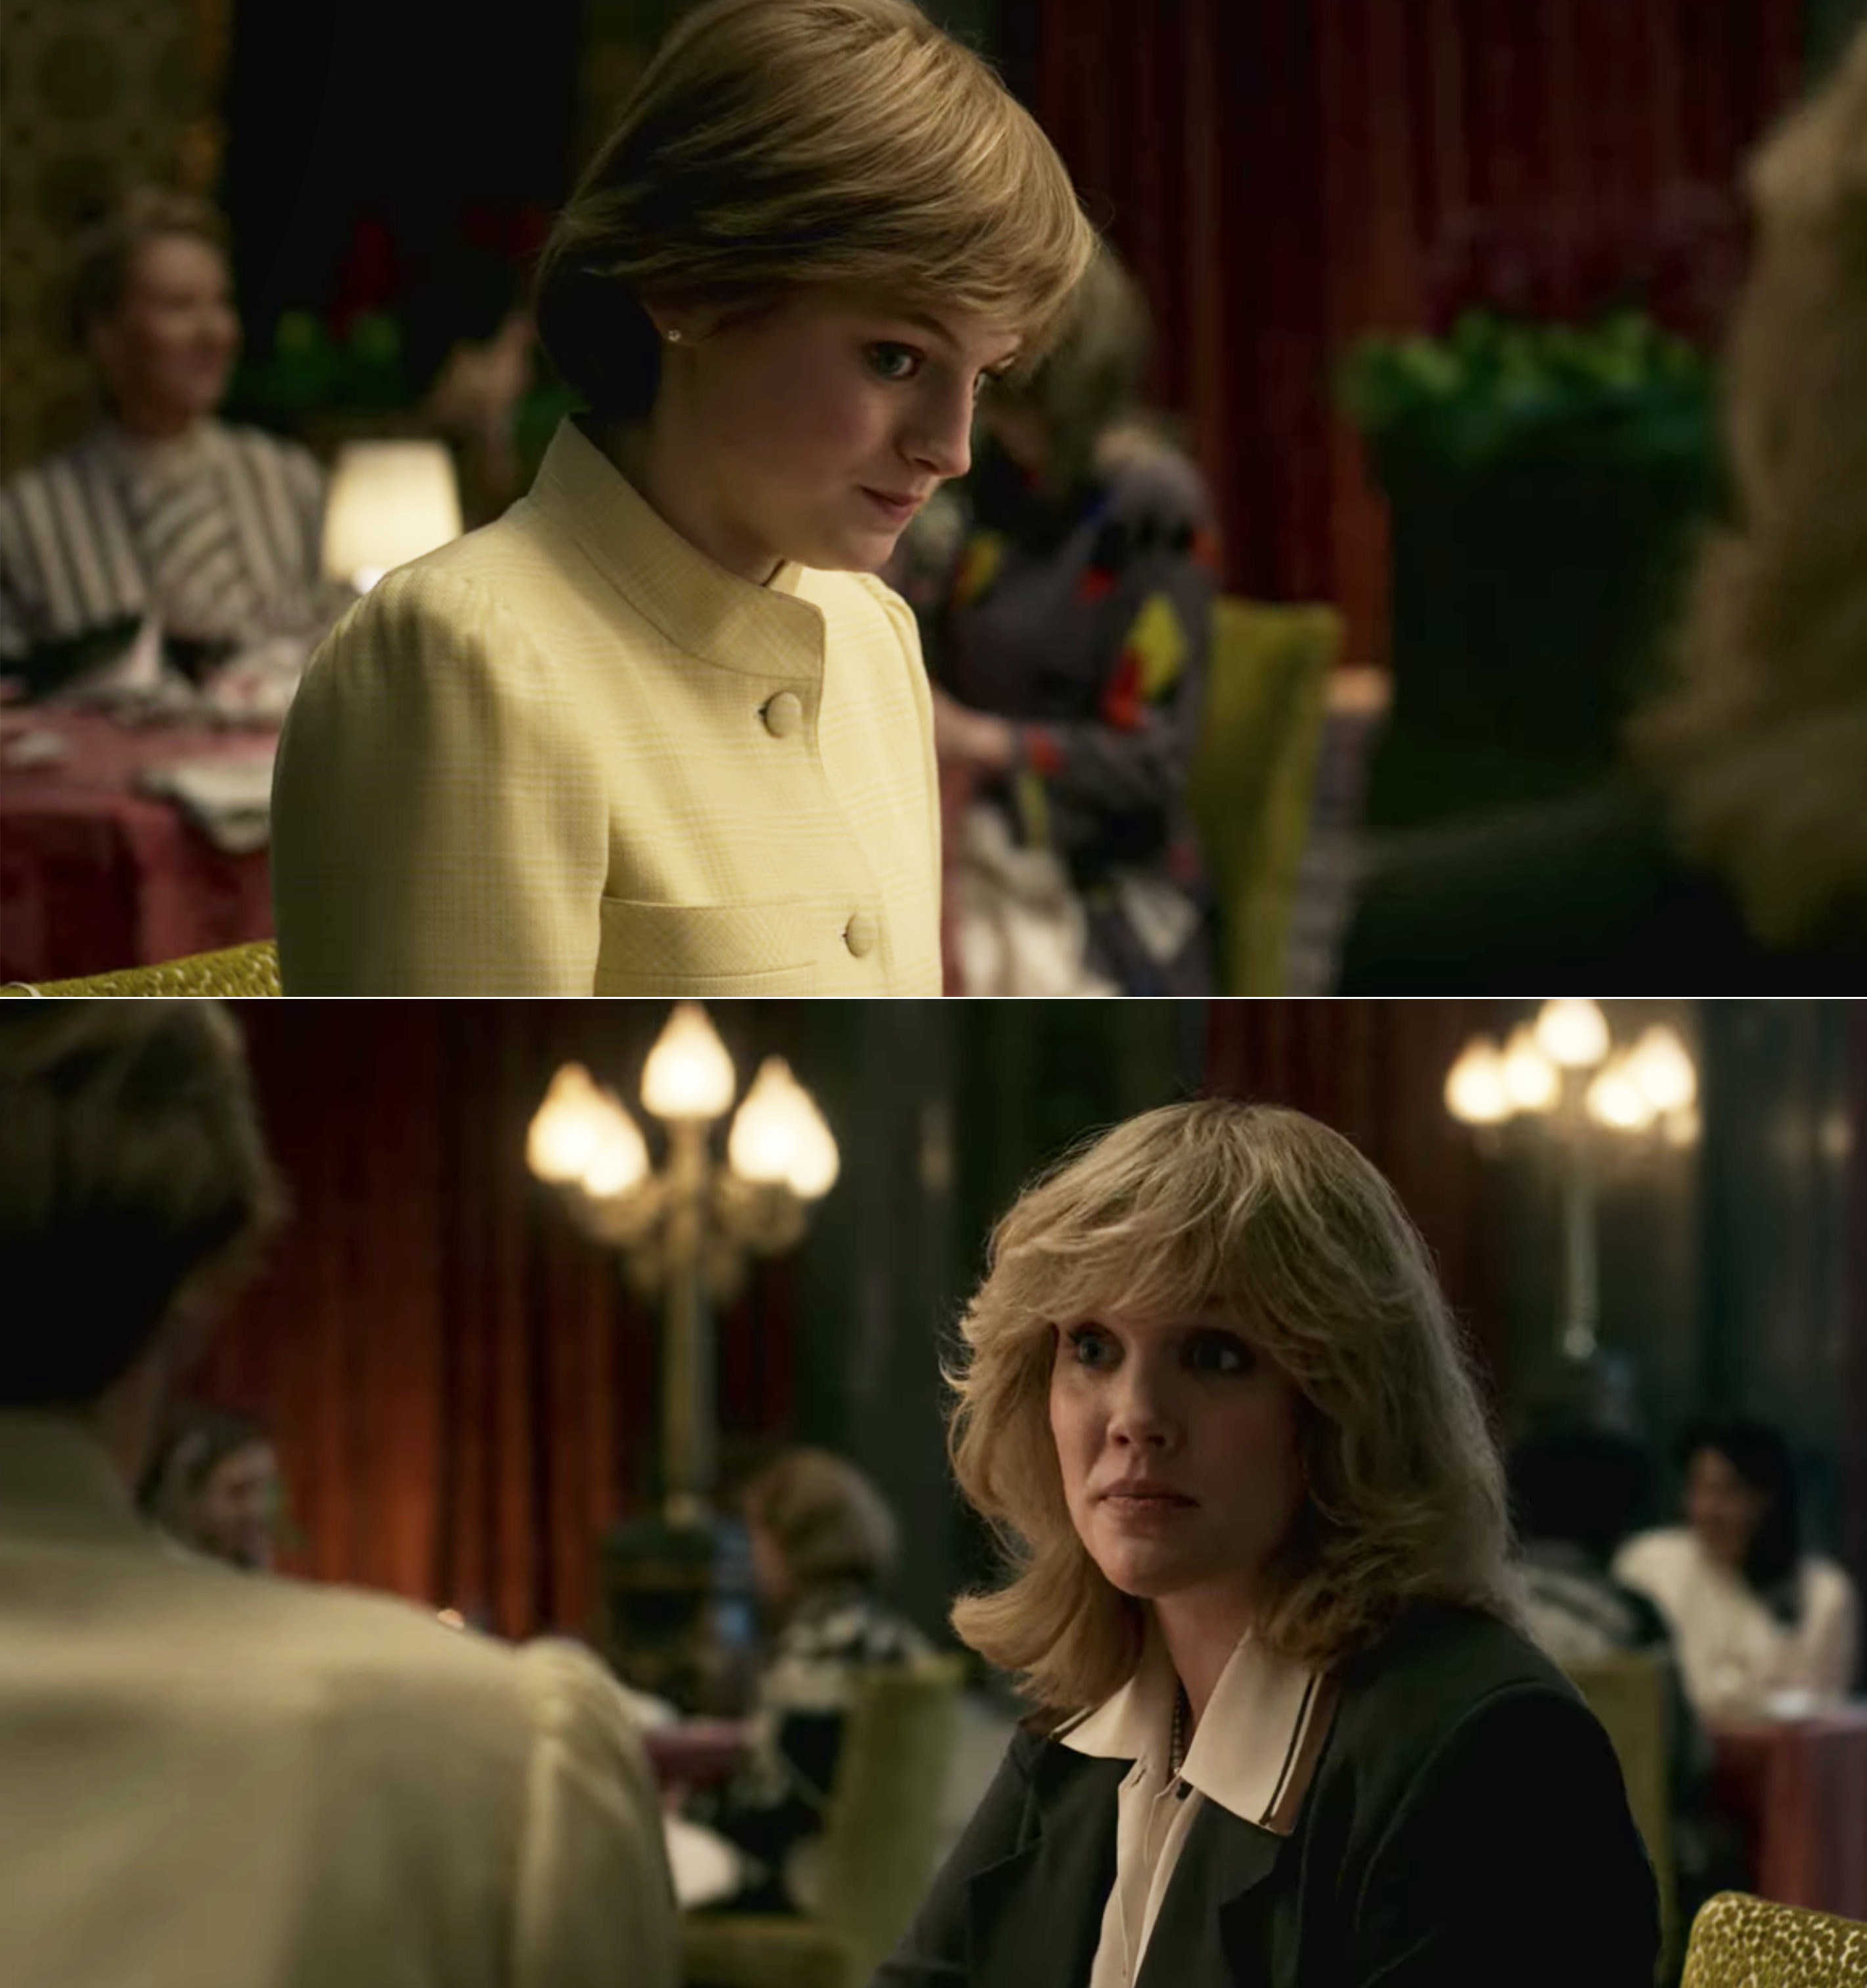 Emma as Princess Diana having a conversation with Emerald Fennell as Camila Parker-Bowles